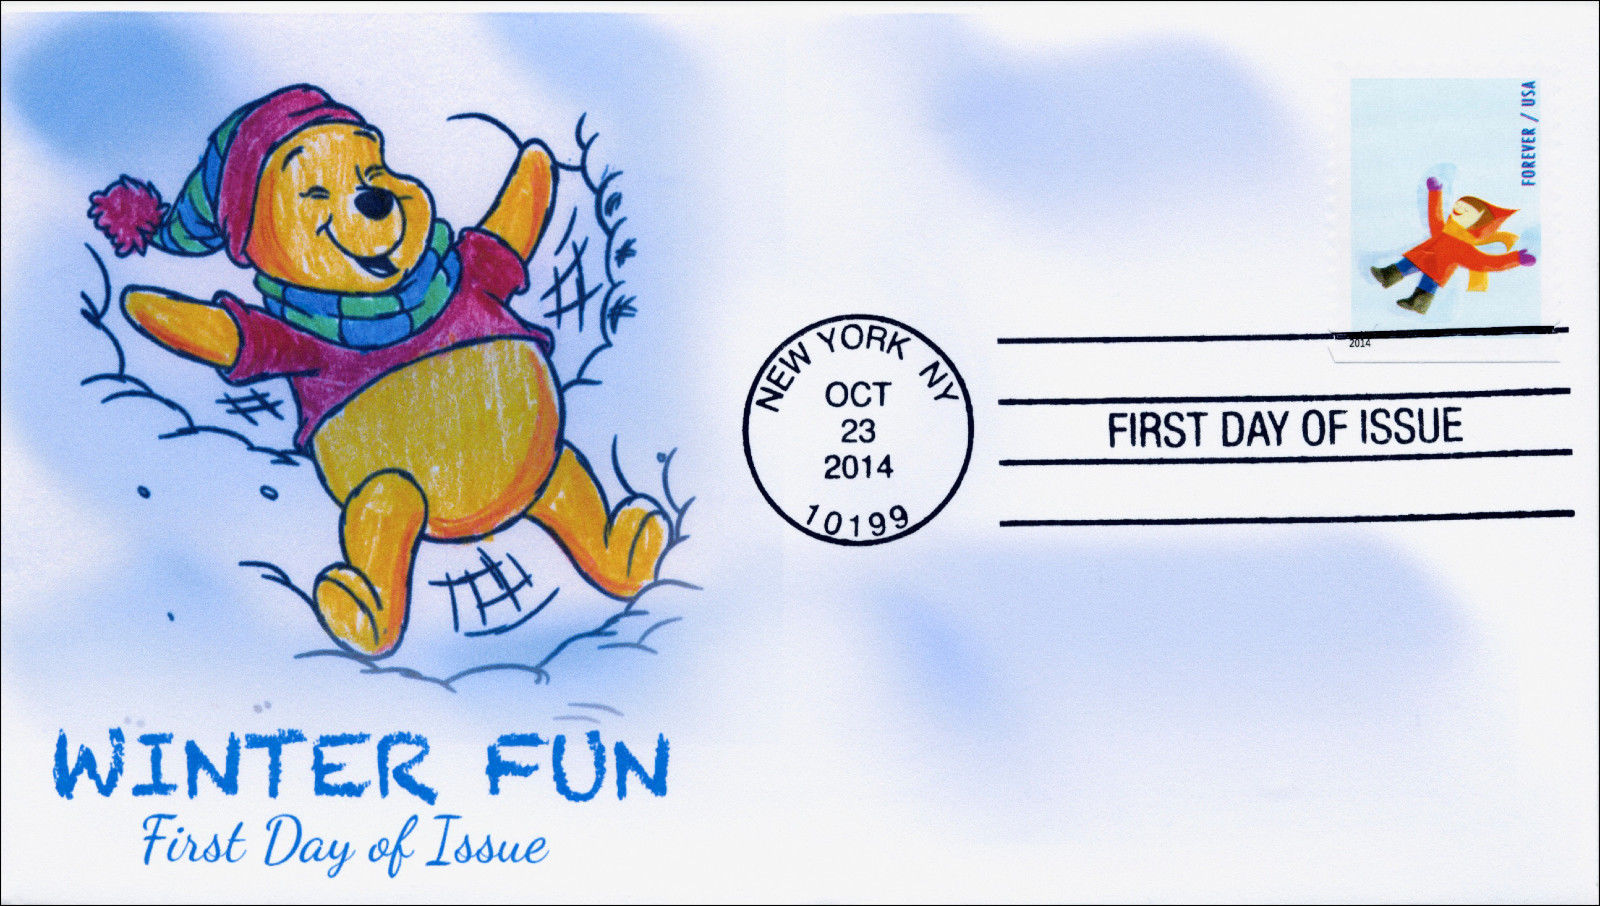 United States - Scott #4940 (2014) first day cover featuring a cachet of Winnie the Pooh creating a snow angel